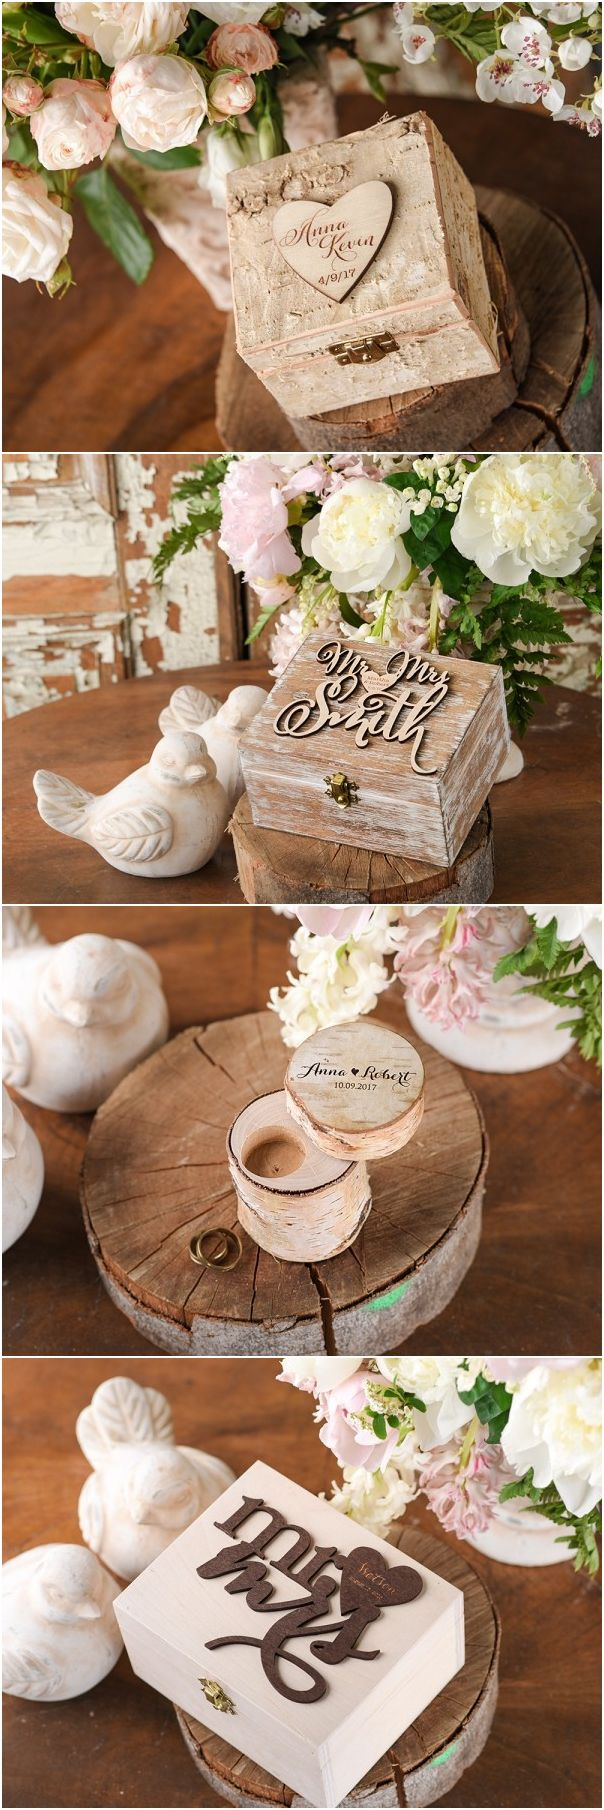 Rustic country wood wedding ring box ideas